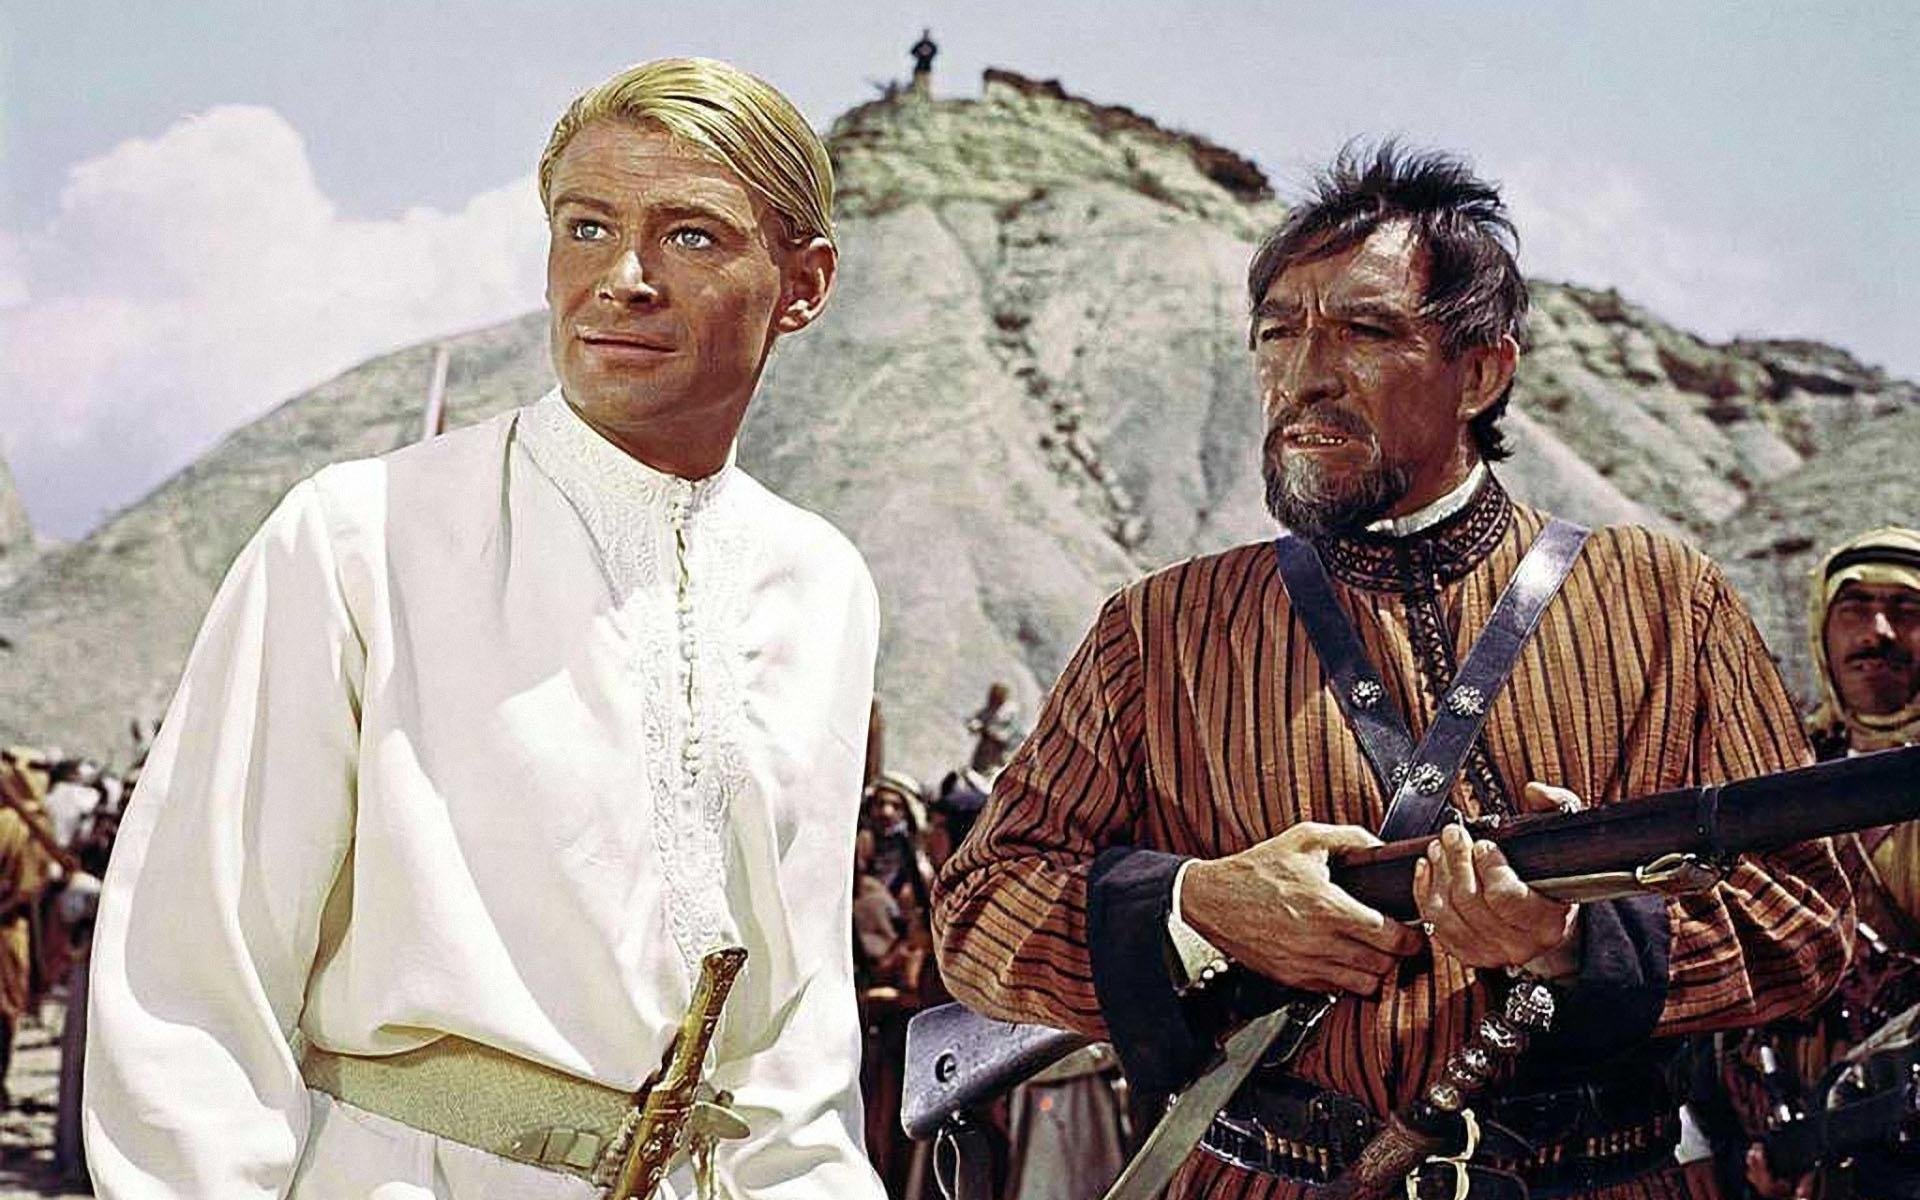 tasteofcinema.com||http://www.tasteofcinema.com/2017/6-reasons-why-lawrence-of-arabia-is-the-best-epic-movie-of-all-time/